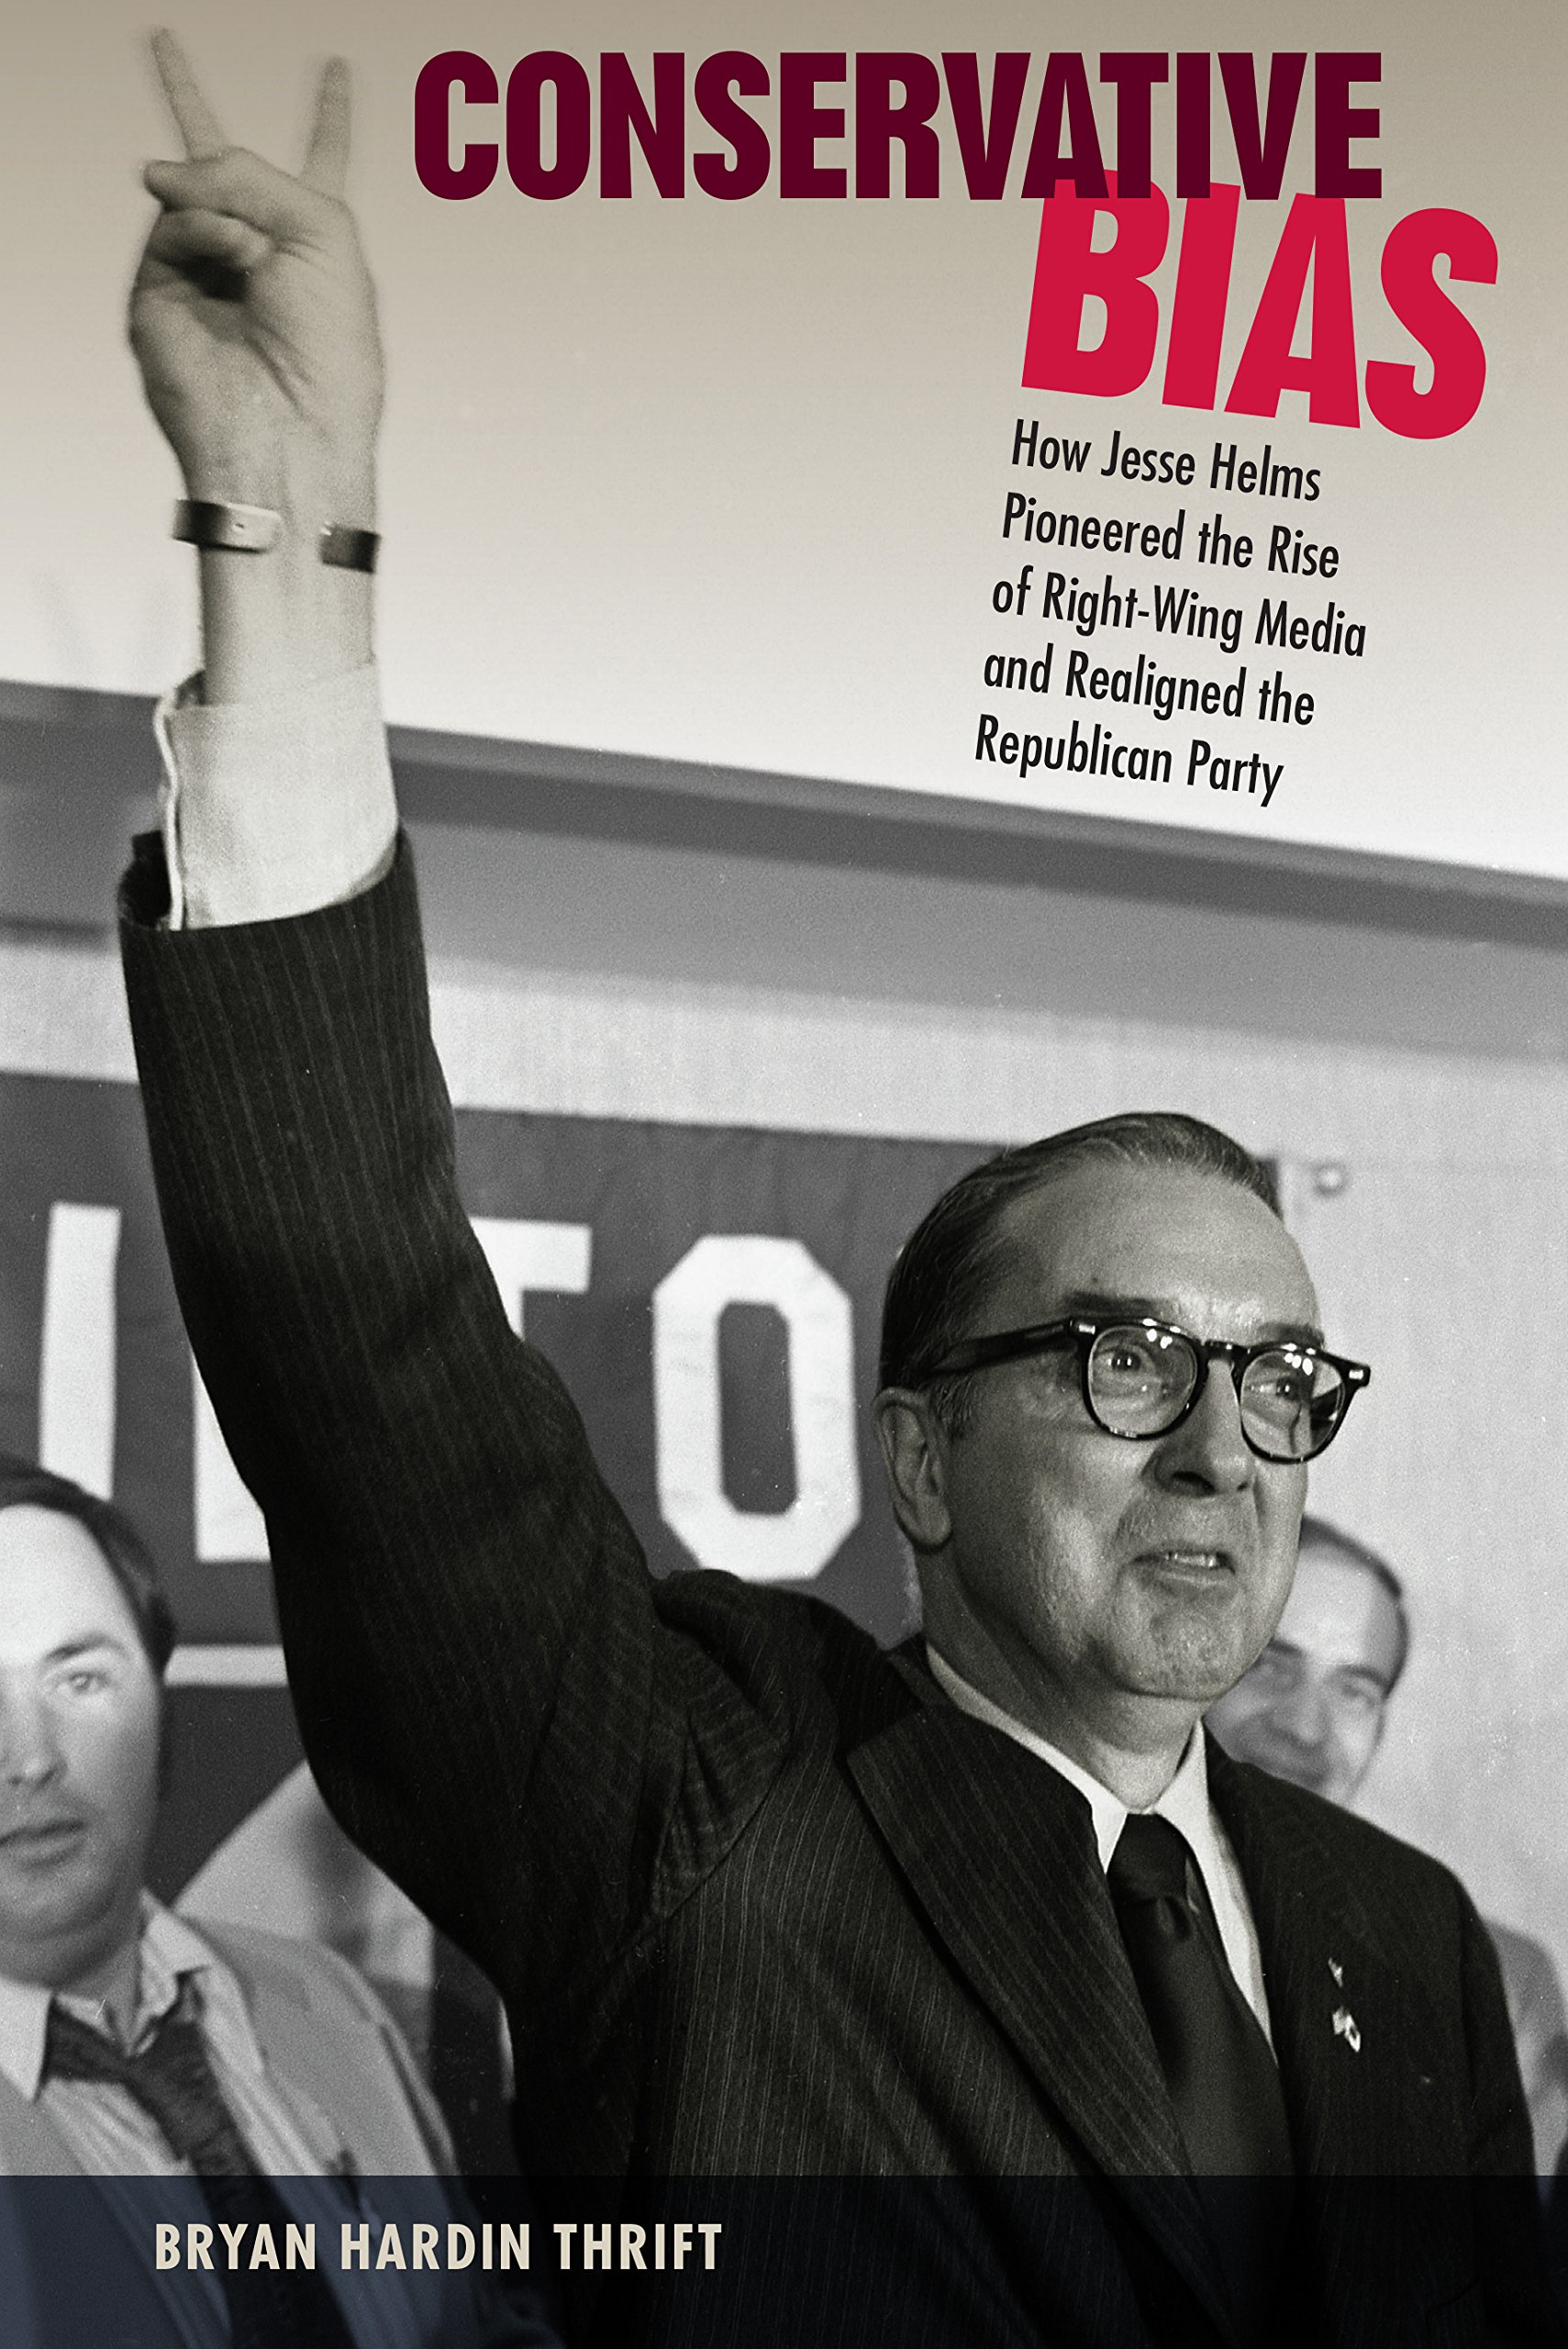 Conservative Bias: How Jesse Helms Pioneered the Rise of Right-Wing Media and Realigned the Republican Party (Sunbelt Studies) ebook